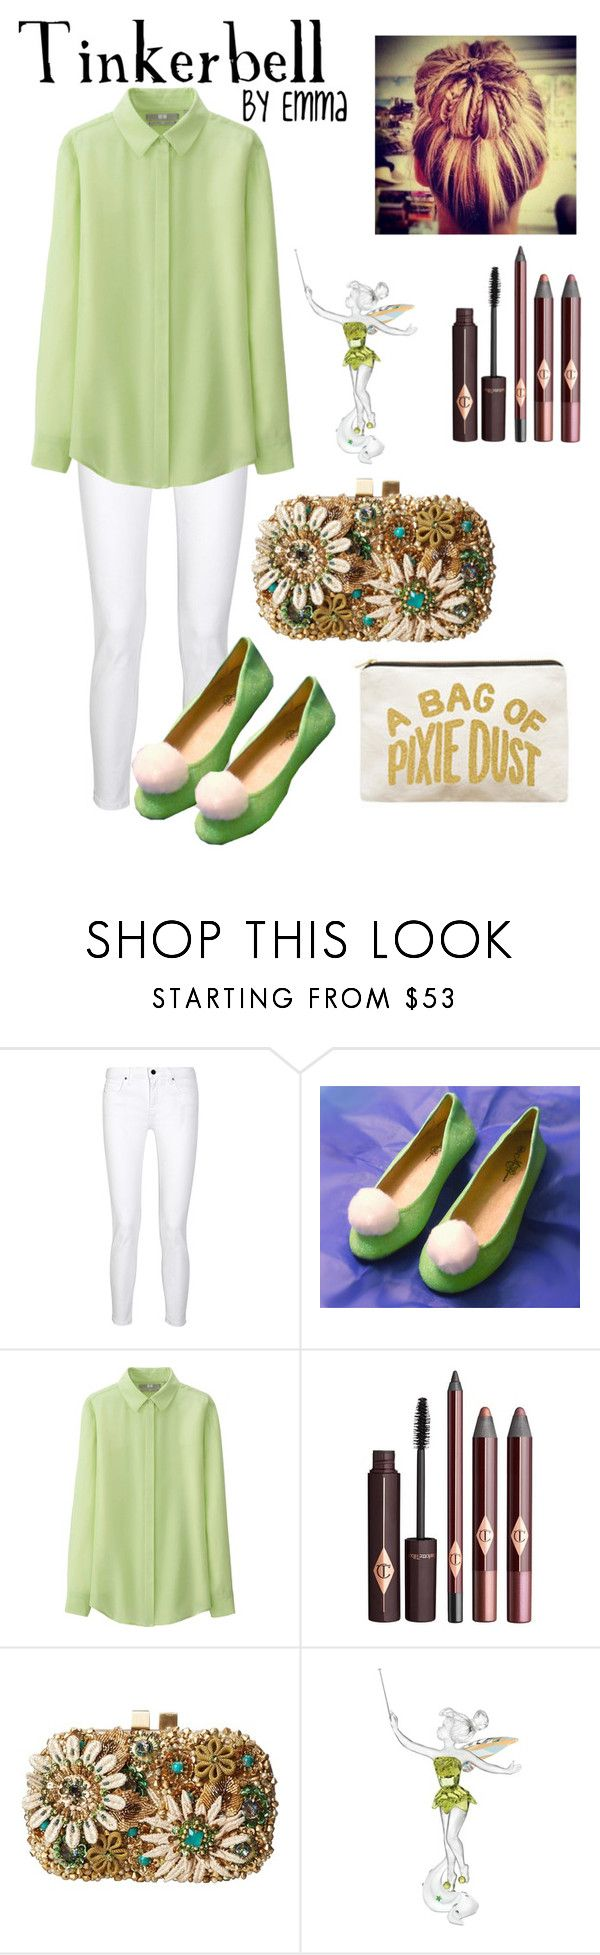 """""""Disney Designs"""" by disneyprincessemma ❤ liked on Polyvore featuring dVb Victoria Beckham, Uniqlo, Mary Frances Accessories, Swarovski and ALPHABET BAGS"""